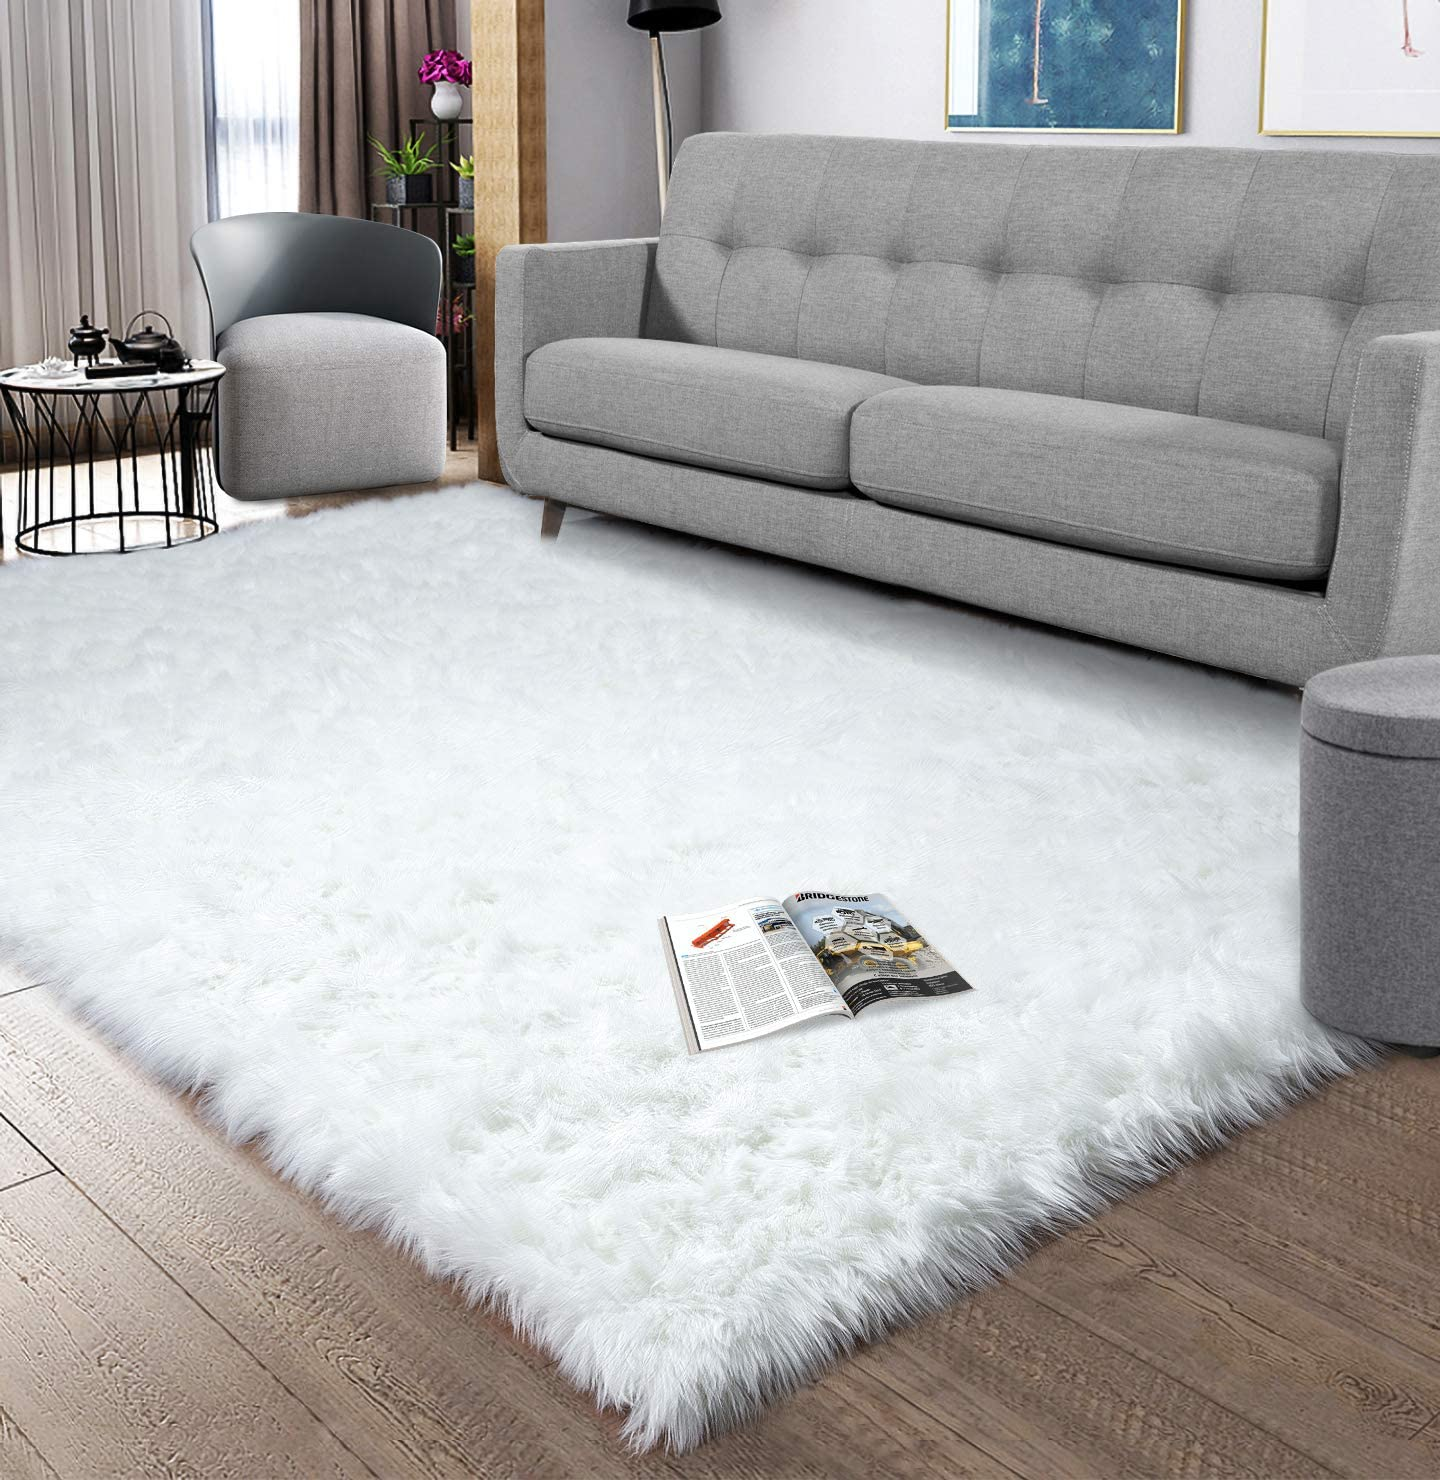 Noahas Luxury Fluffy Rugs Bedroom Furry Carpet Bedside Faux Fur Sheepskin Area Rugs Children Play Princess Room Decor Rug